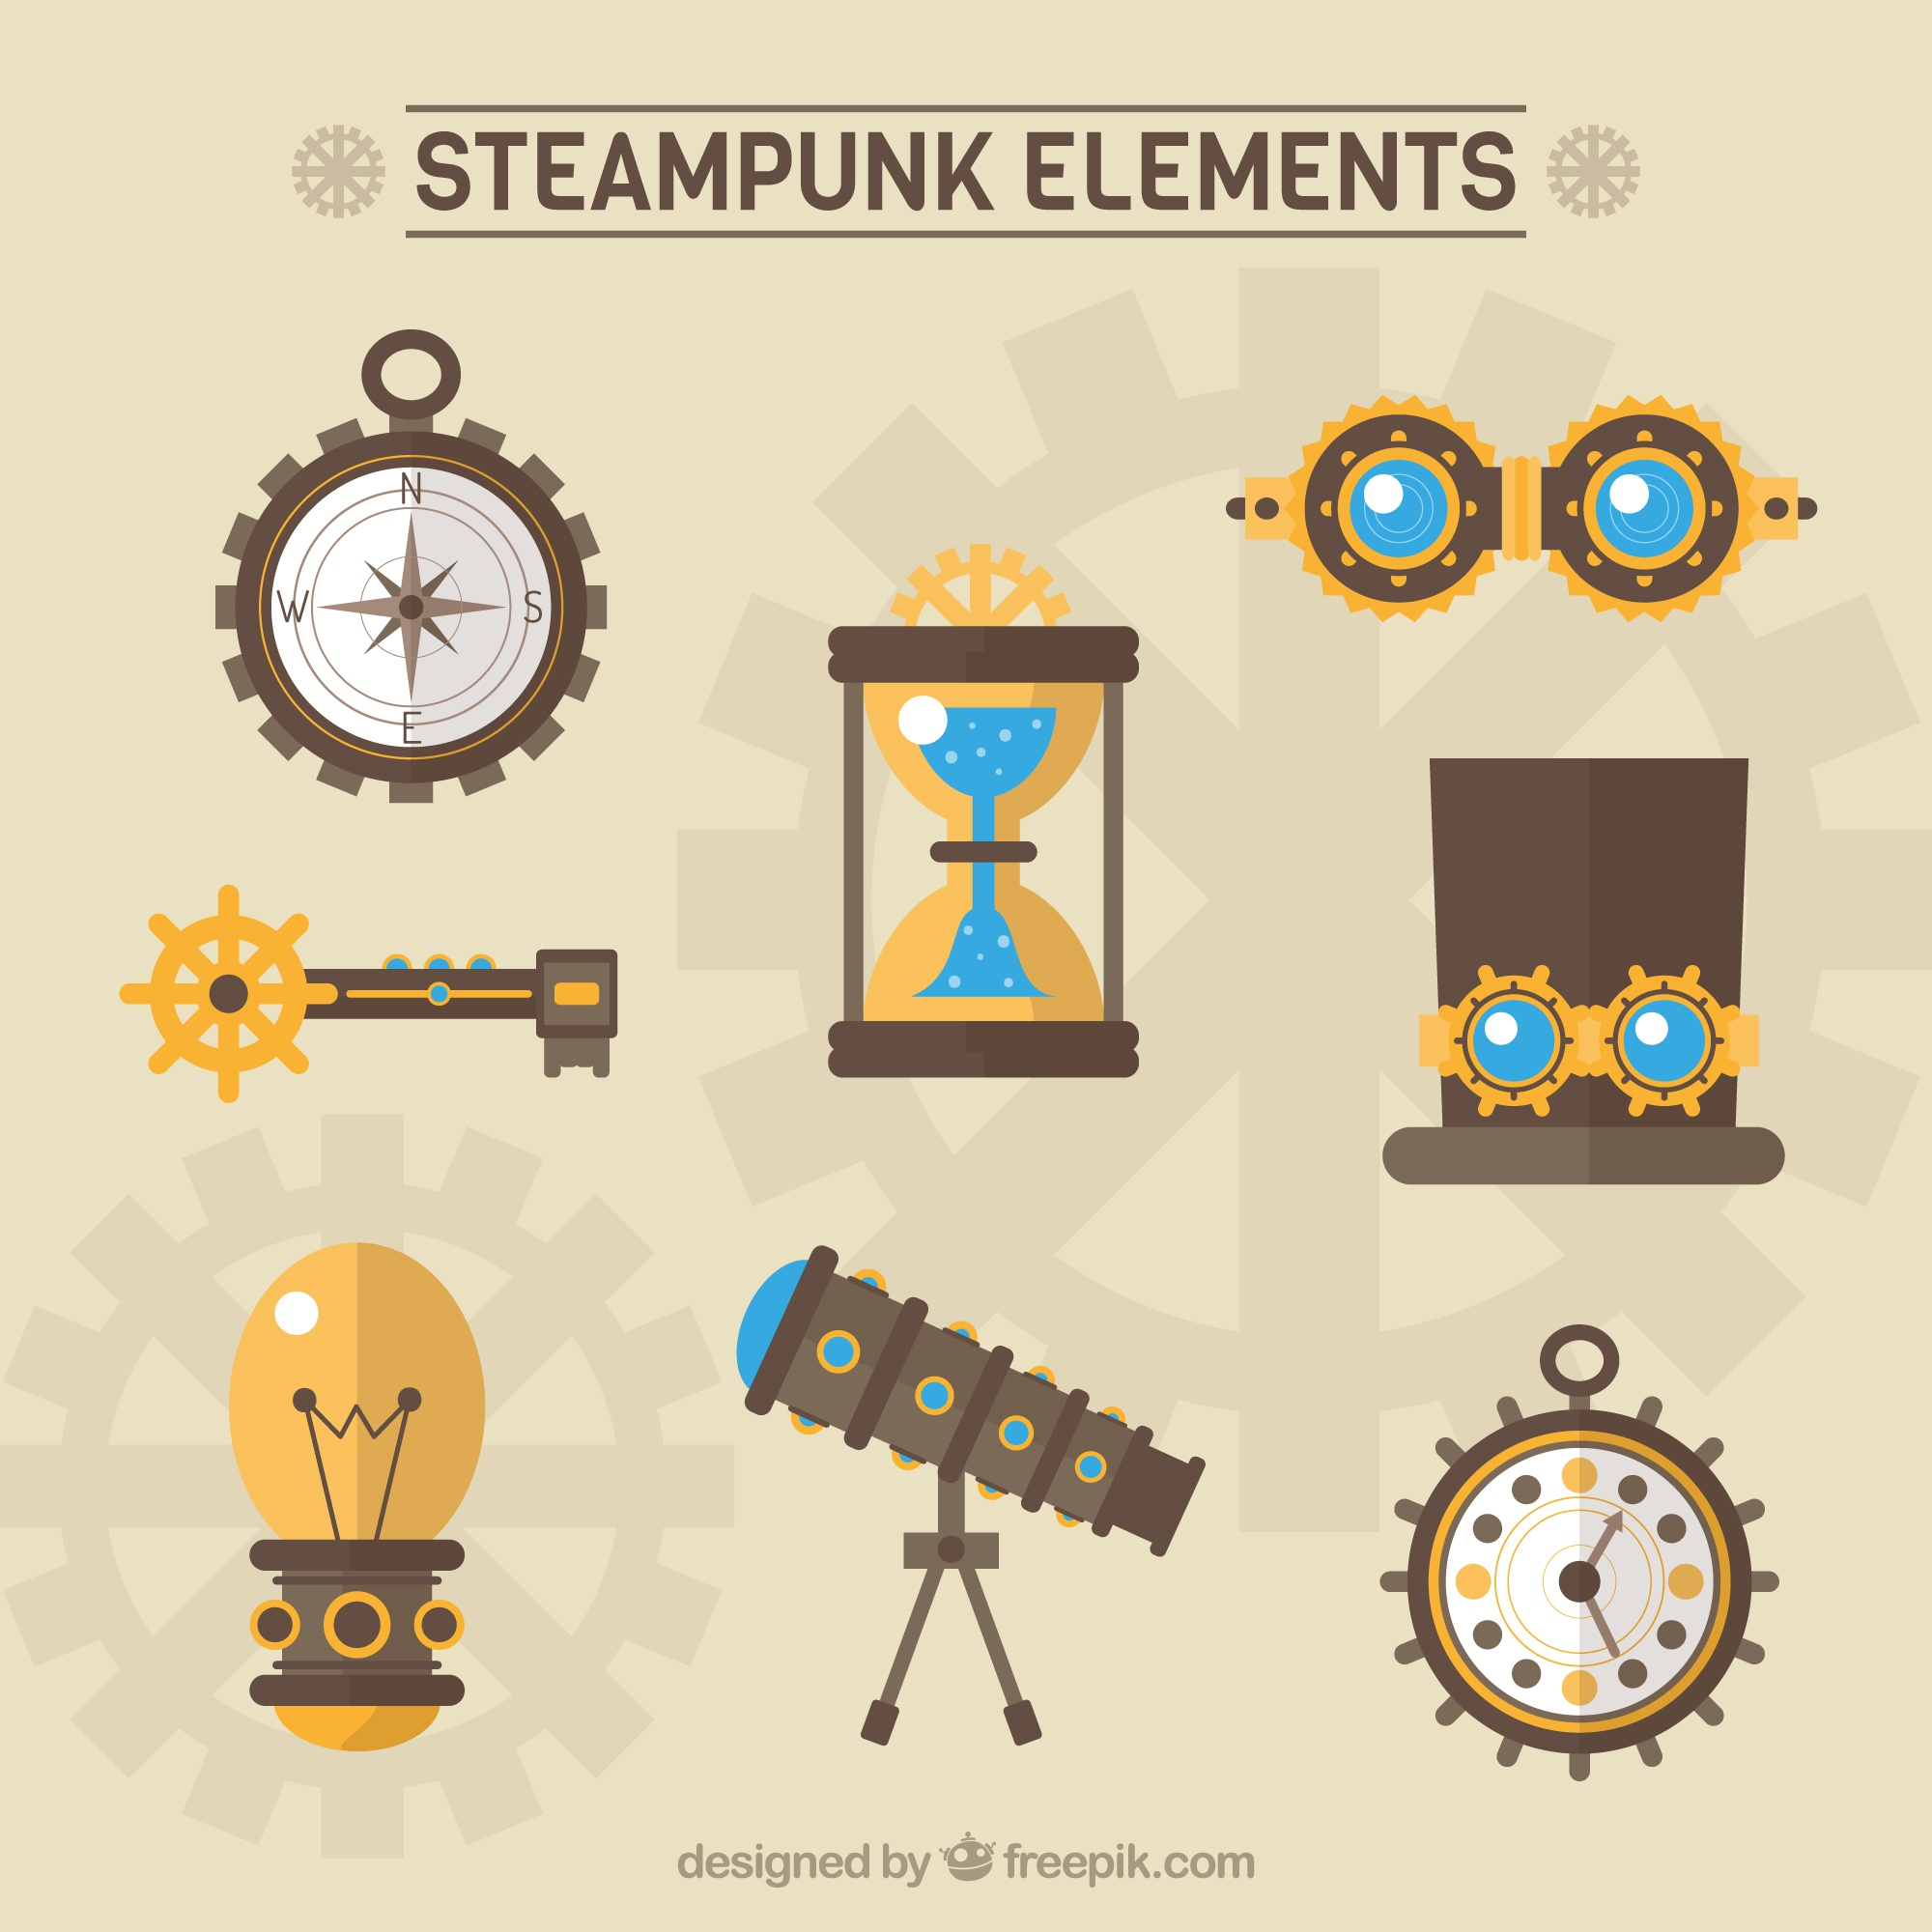 Steampunk elements pack in flat design